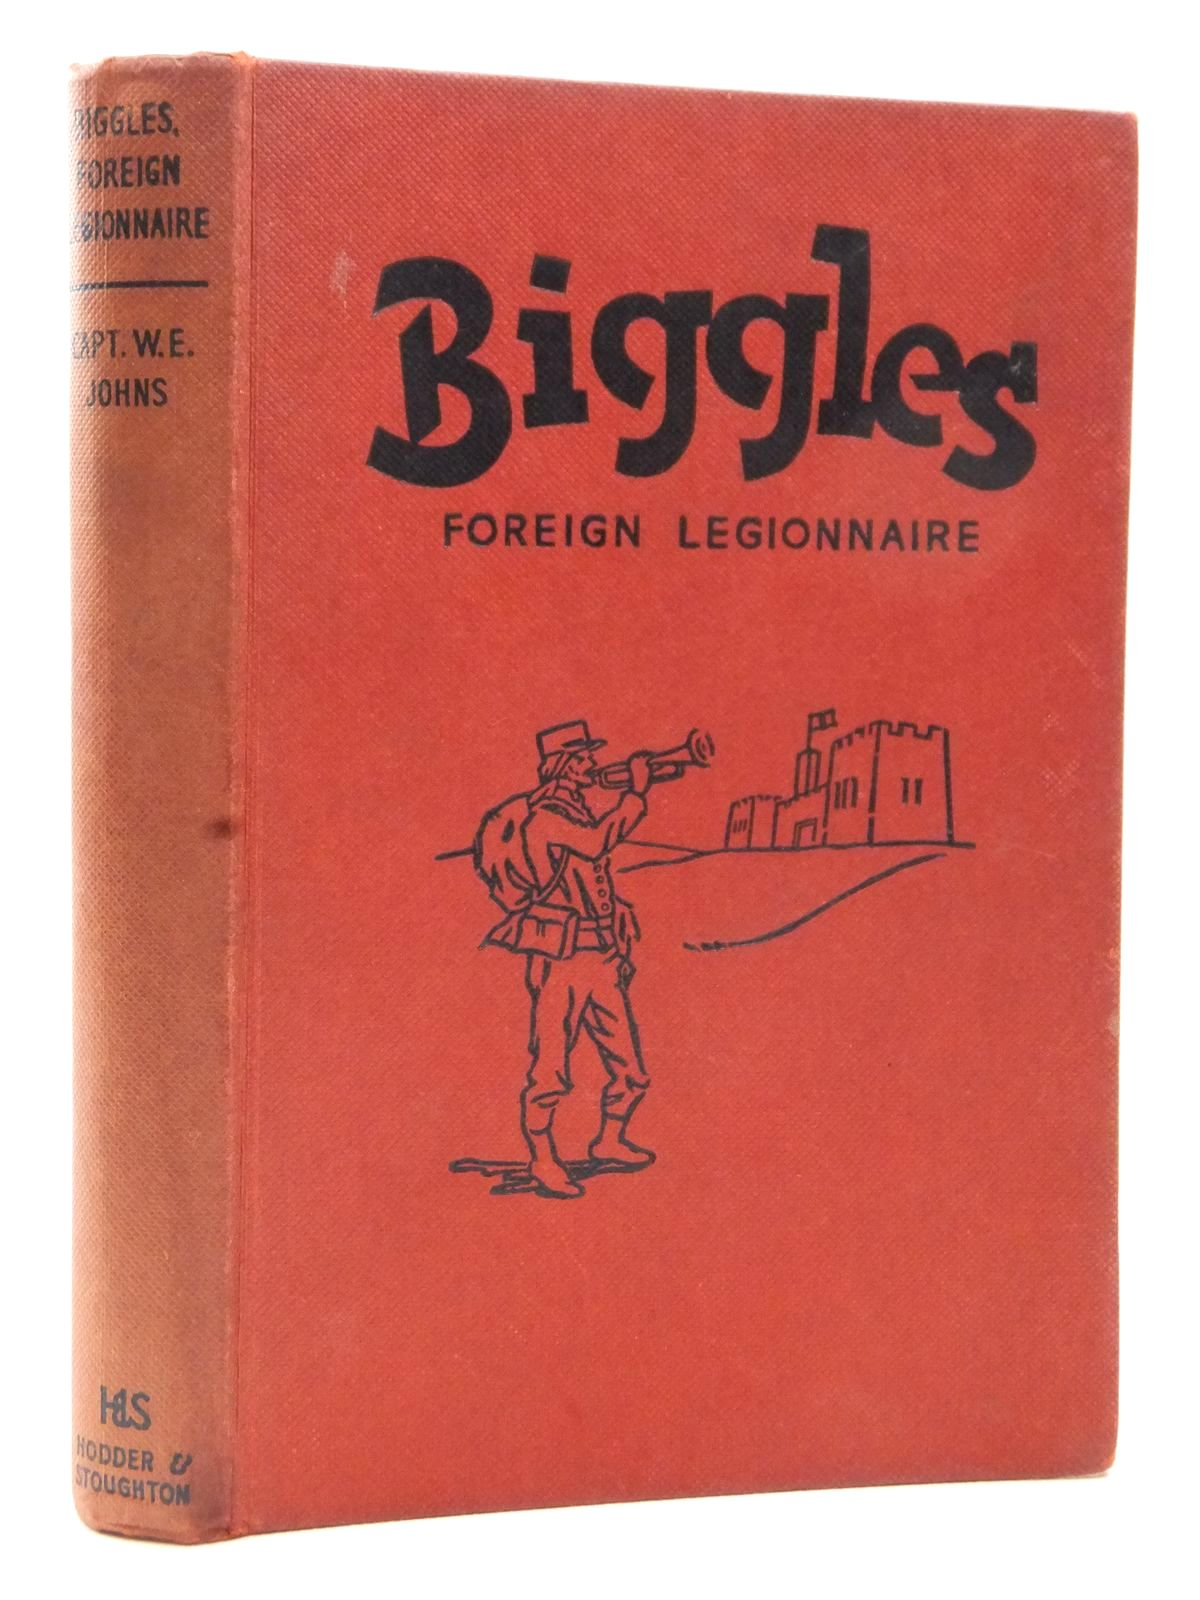 Photo of BIGGLES FOREIGN LEGIONNAIRE written by Johns, W.E. illustrated by Stead,  published by Hodder & Stoughton (STOCK CODE: 2123063)  for sale by Stella & Rose's Books